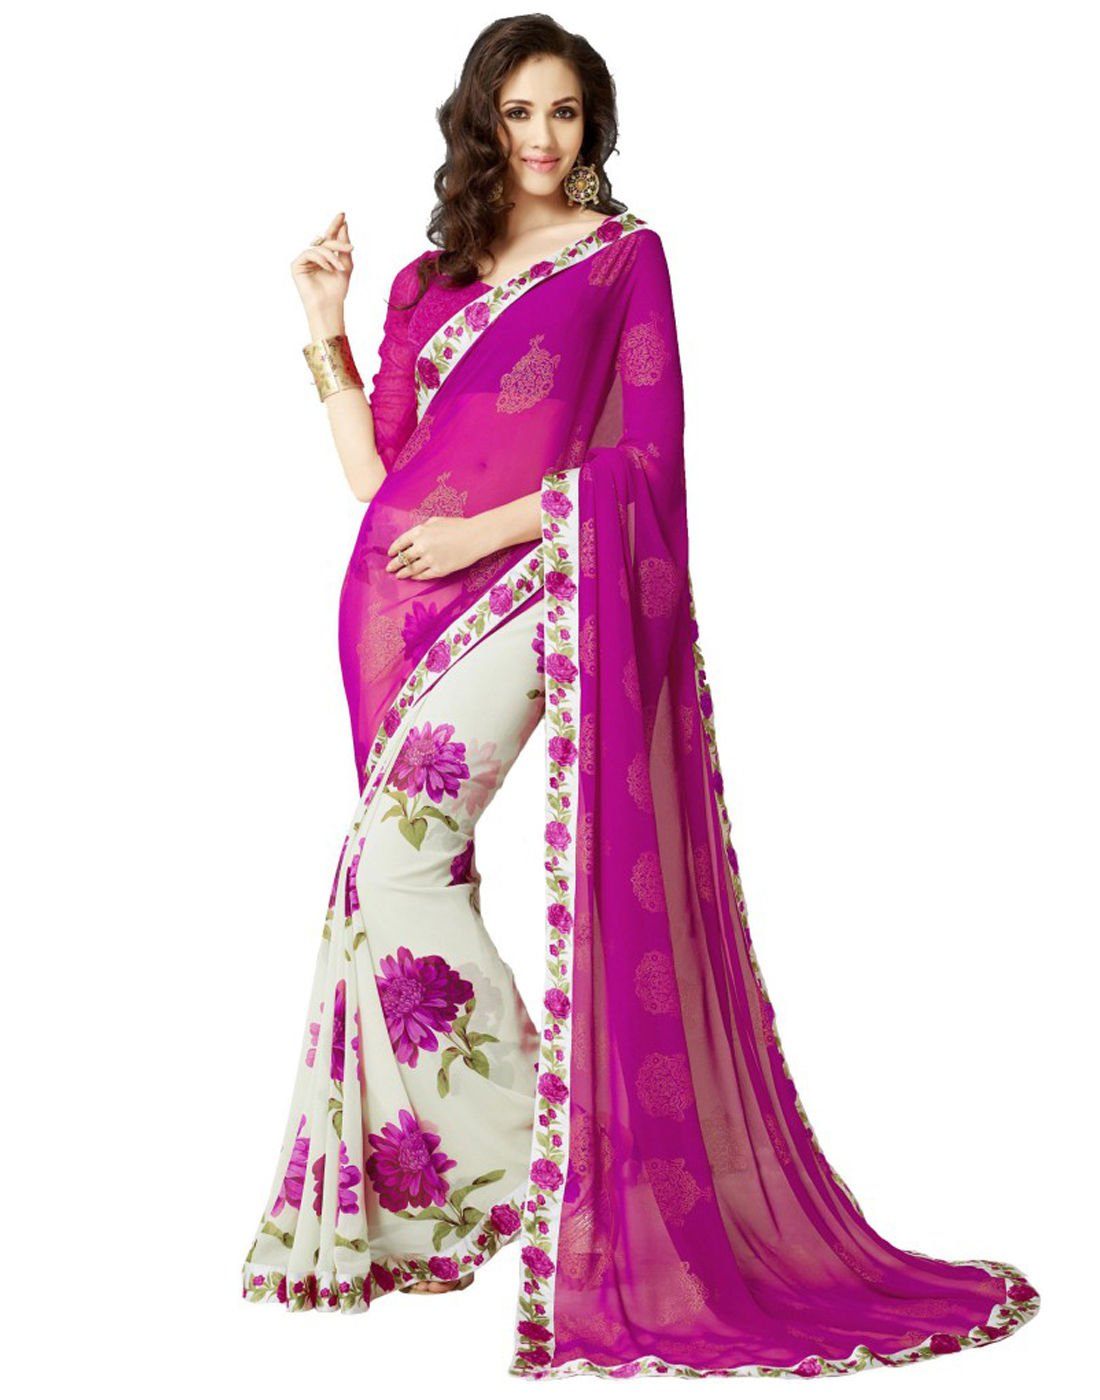 Indian Ethnic Bollywood Saree Party Wear Pakistani Designer Sari Wedding,Pink,Free Size(Unstitched blouse)